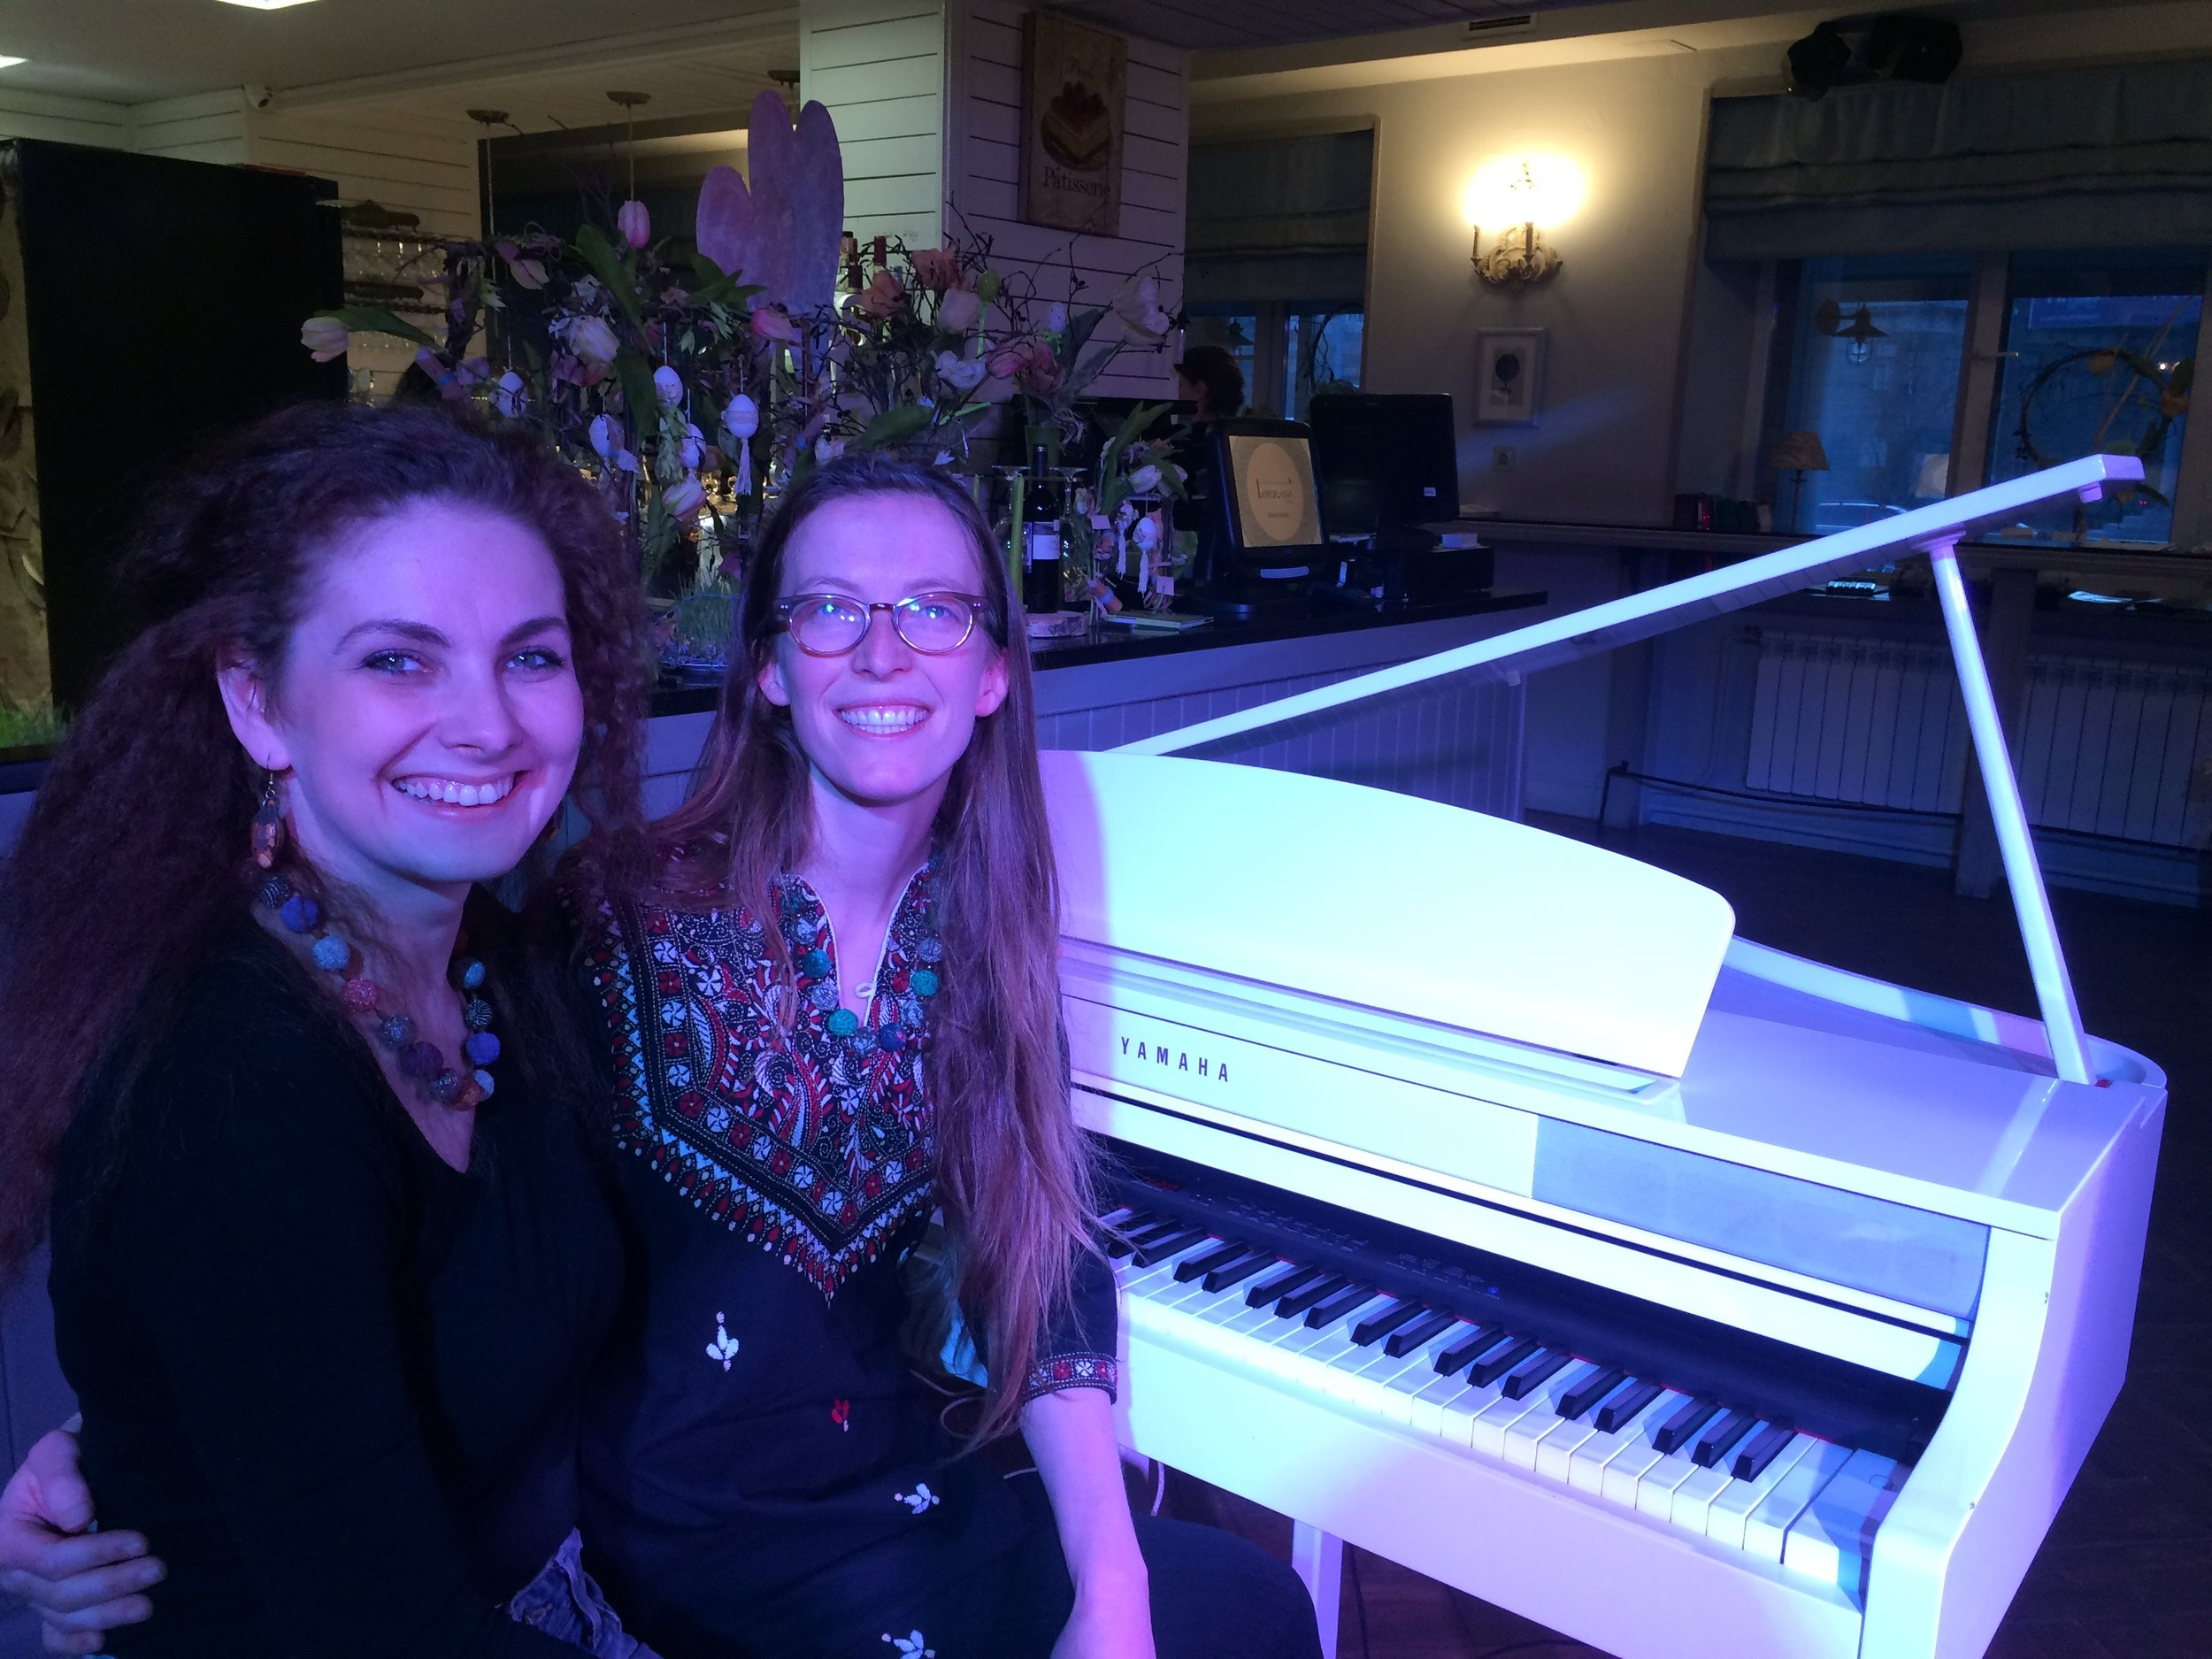 Anna Akimova and me at our performance at La Terrasa in Arkhangelsk. 2017